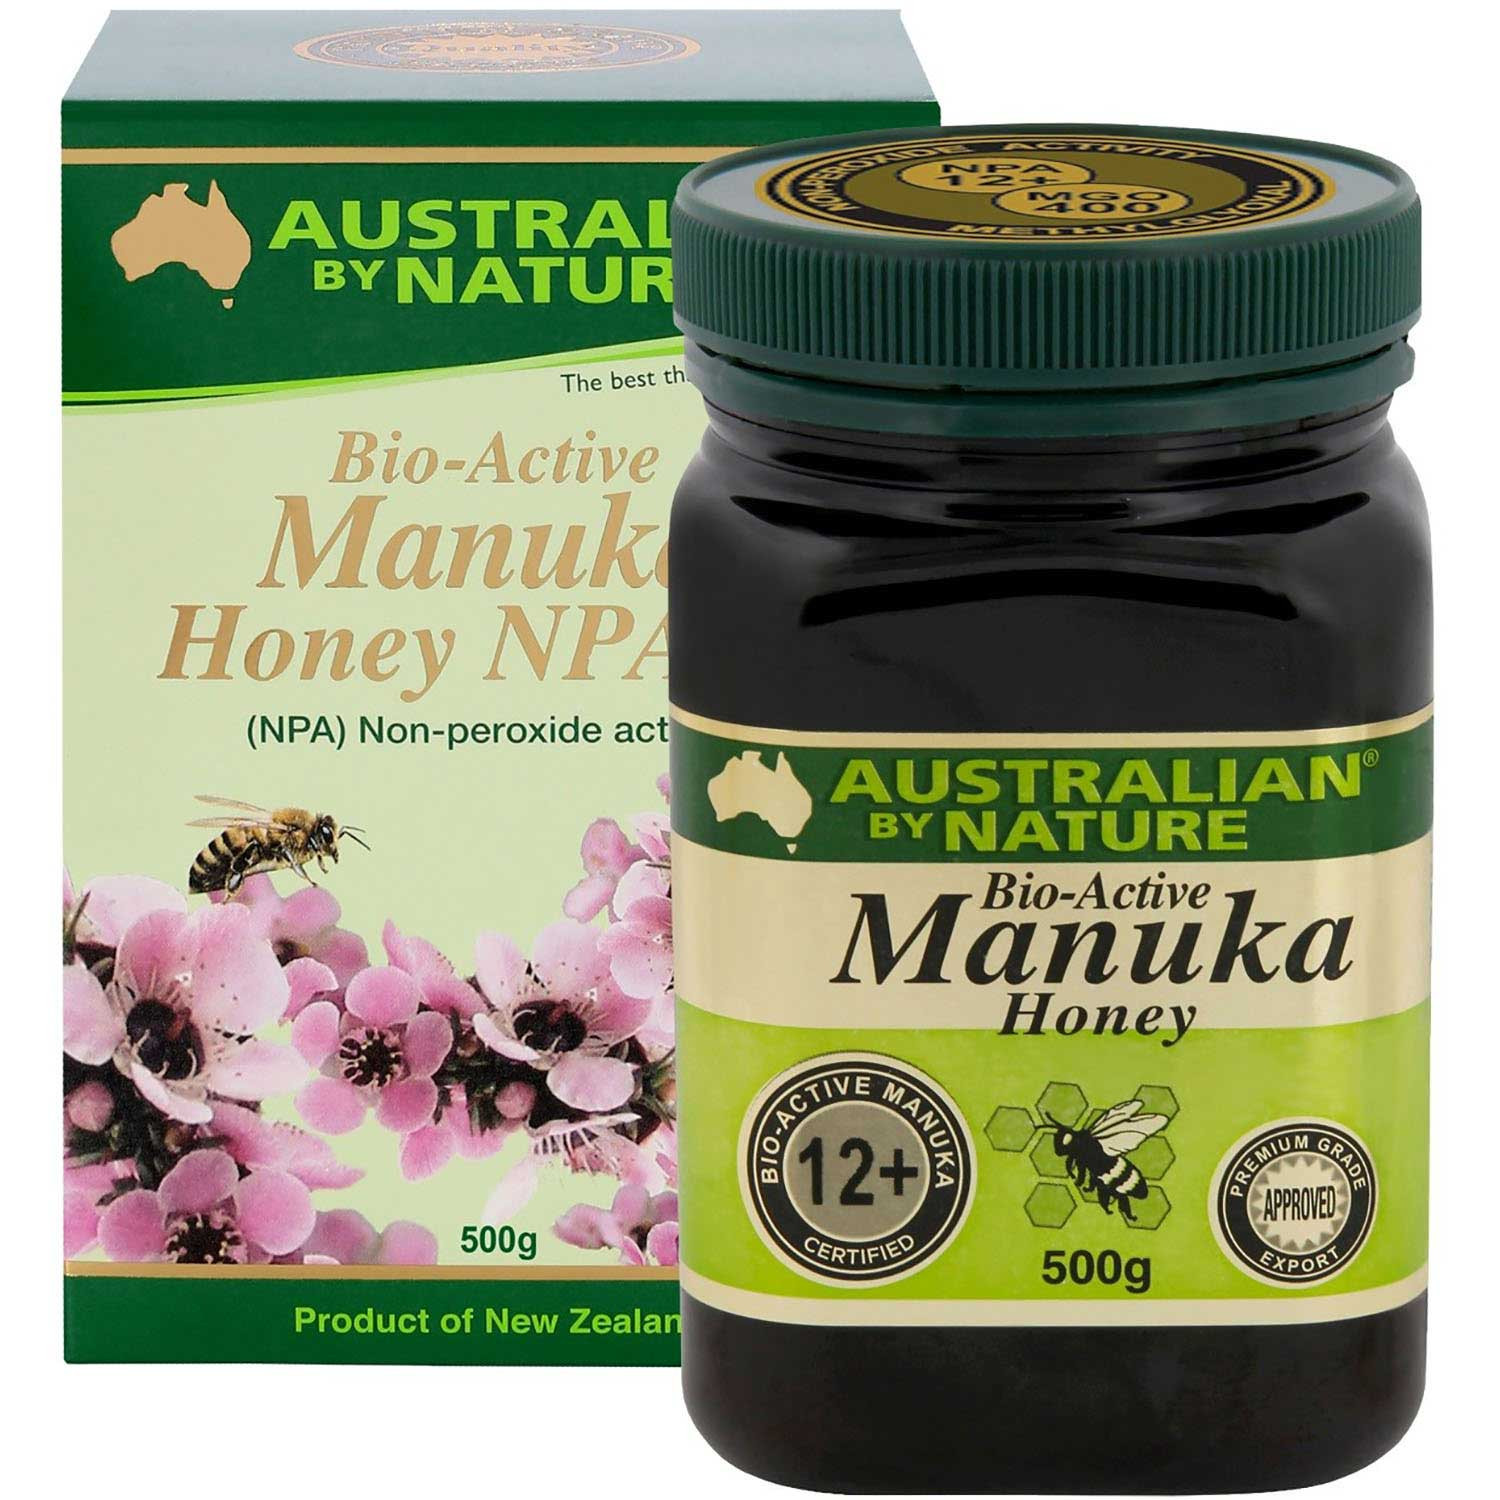 Australian By Nature Bio-Active Manuka Honey NPA 12+, 500 g